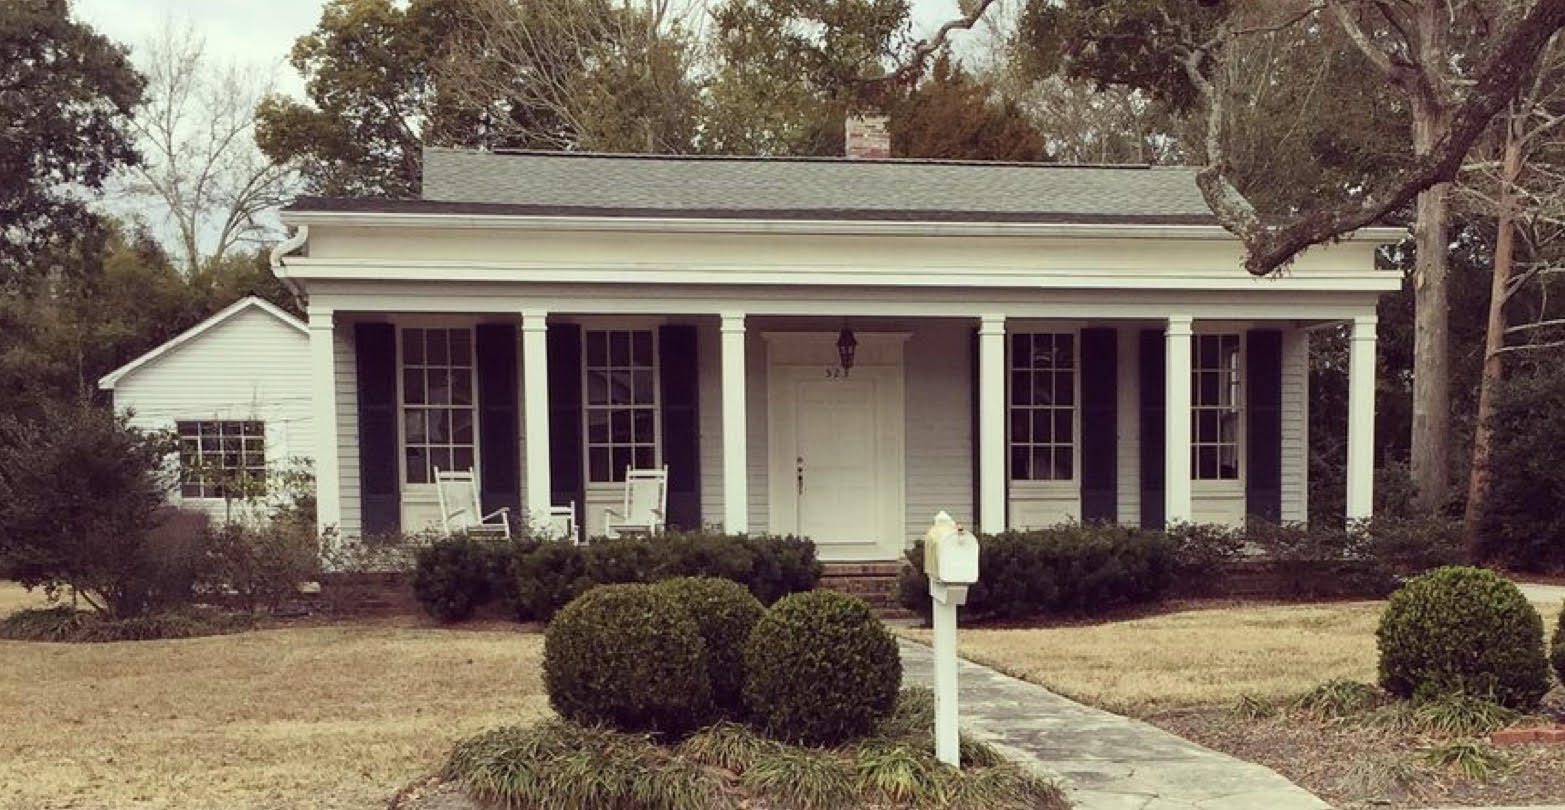 523 Jackson, Ocean Springs - This has long been my favorite house in OS. I've always imagined myself living there, the front door redone with 6 lights and a shiny poison green coat, or 16, of paint.photo: Keith Wooten